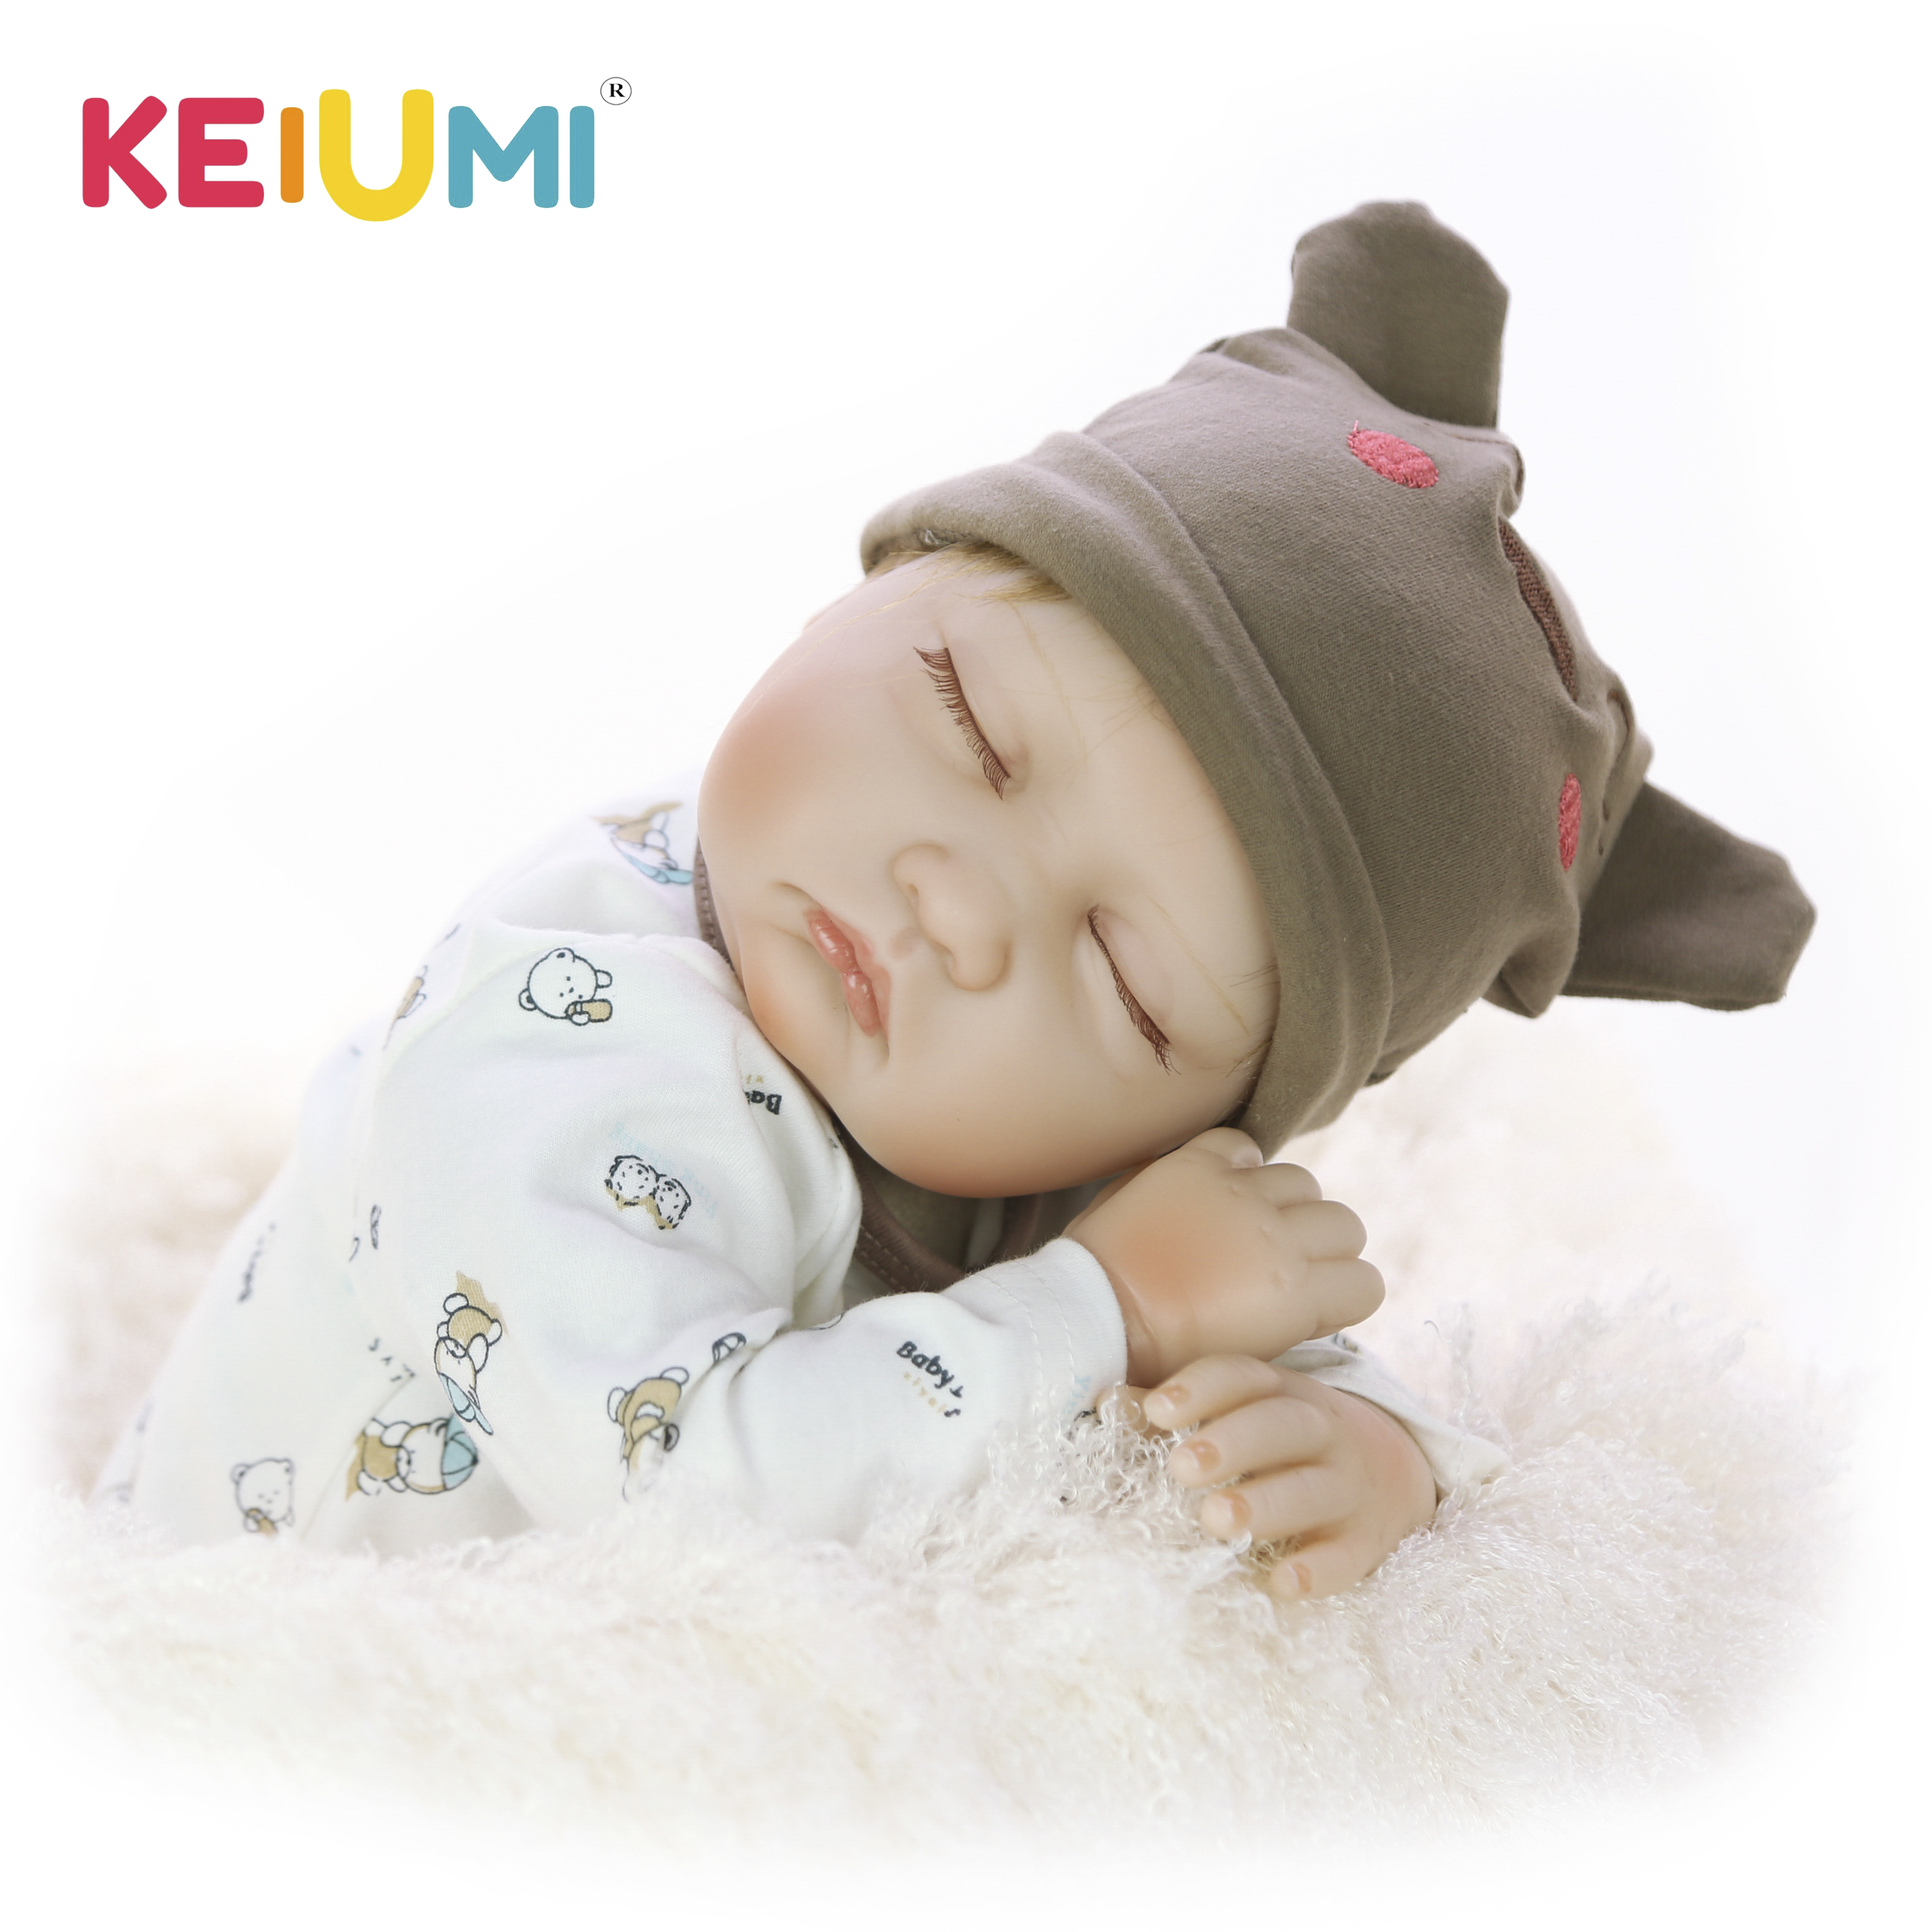 Hot Sale Lifelike Asleep Doll Reborn Real Baby Toy 22'' Soft Silicone Vinyl Boneca Reborn 55 cm Boy Kids Birthday Gift Playmate-in Dolls from Toys & Hobbies    1